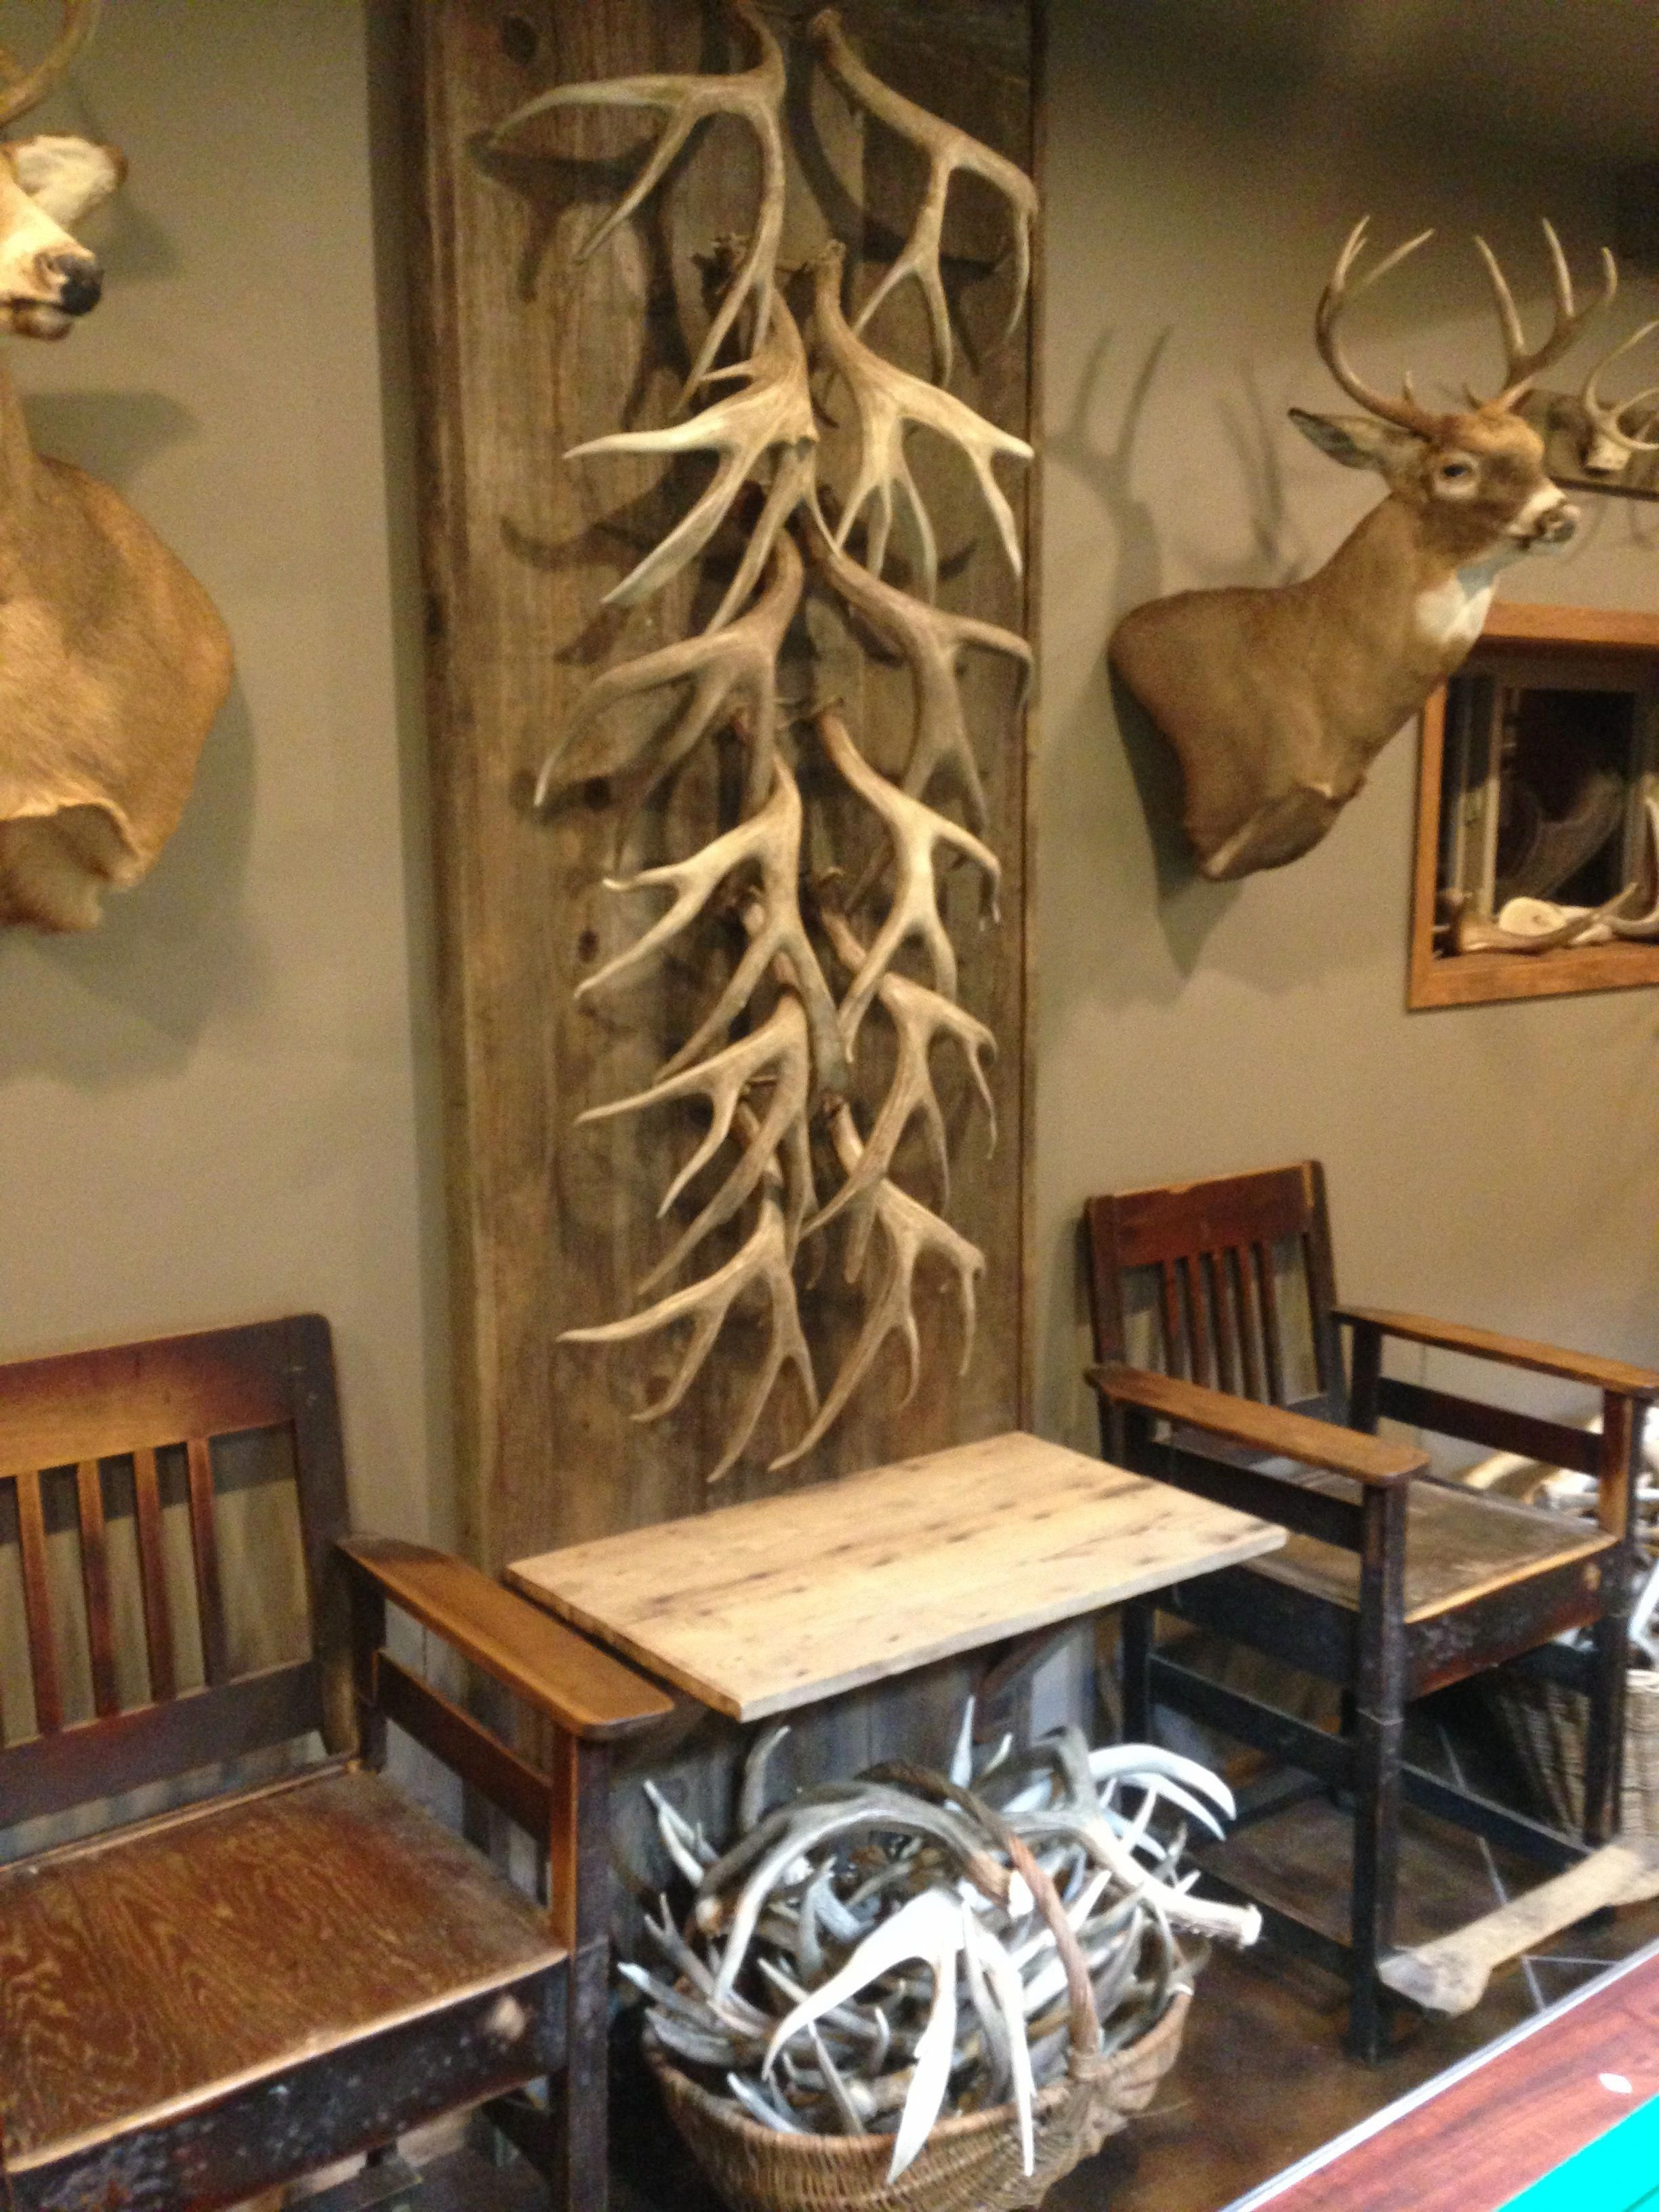 Add A Bar To Your Man Cave Man Cave Home Bar Hunting Decor Living Room Rustic Hunting Decor Deer Hunting Decor